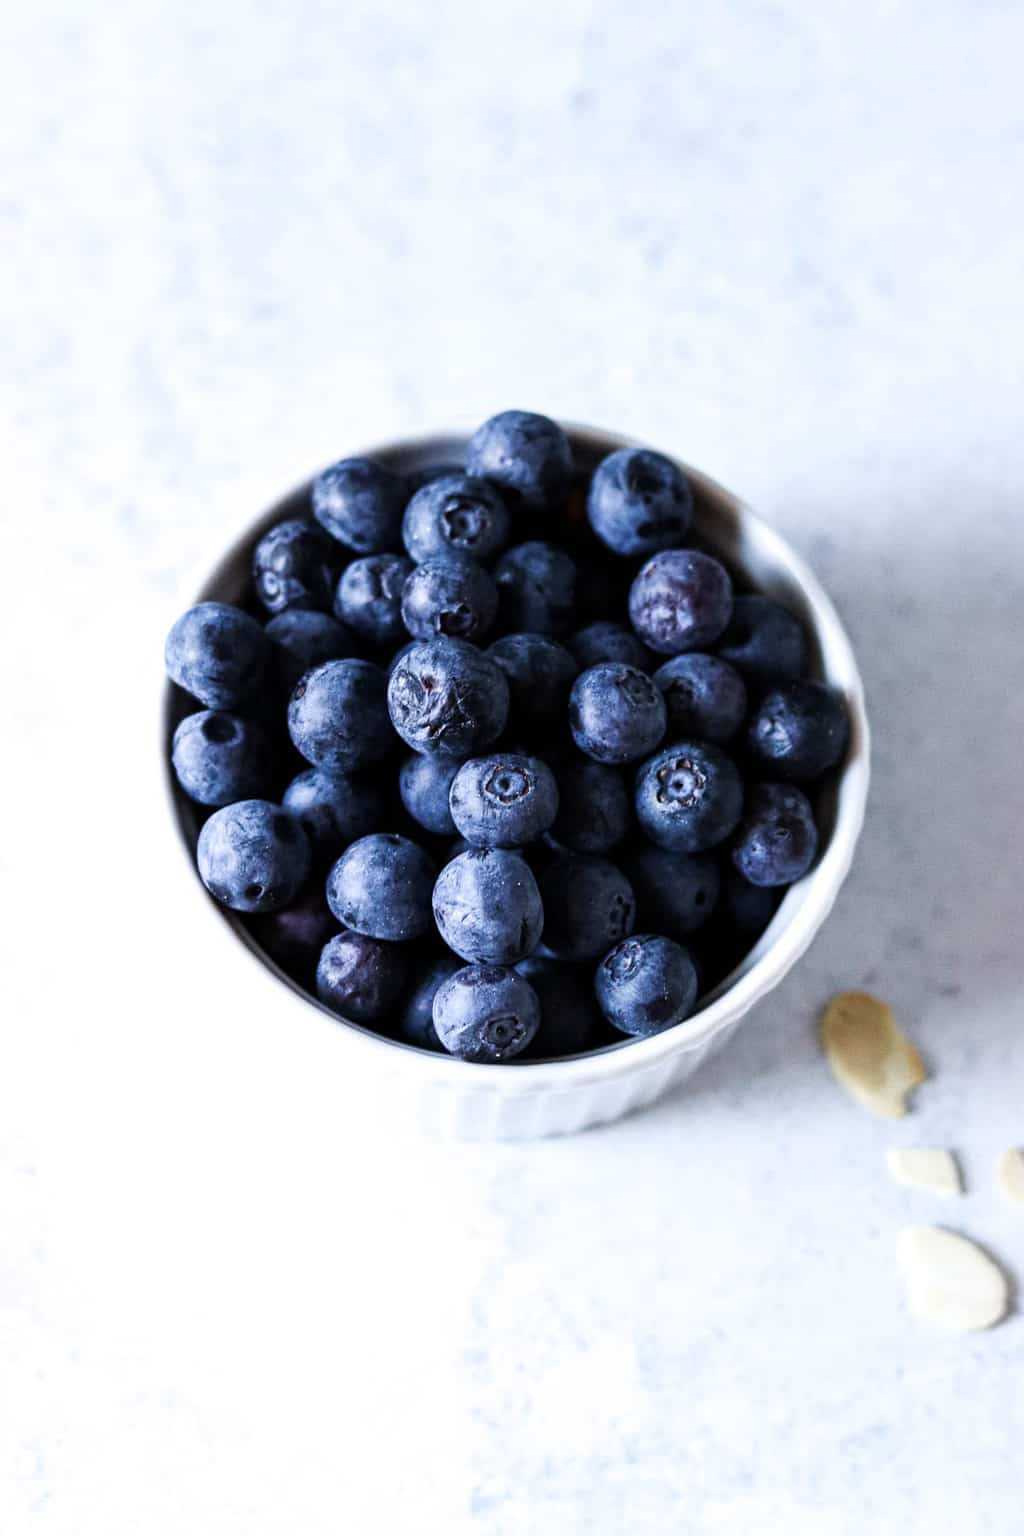 A cup of blueberries